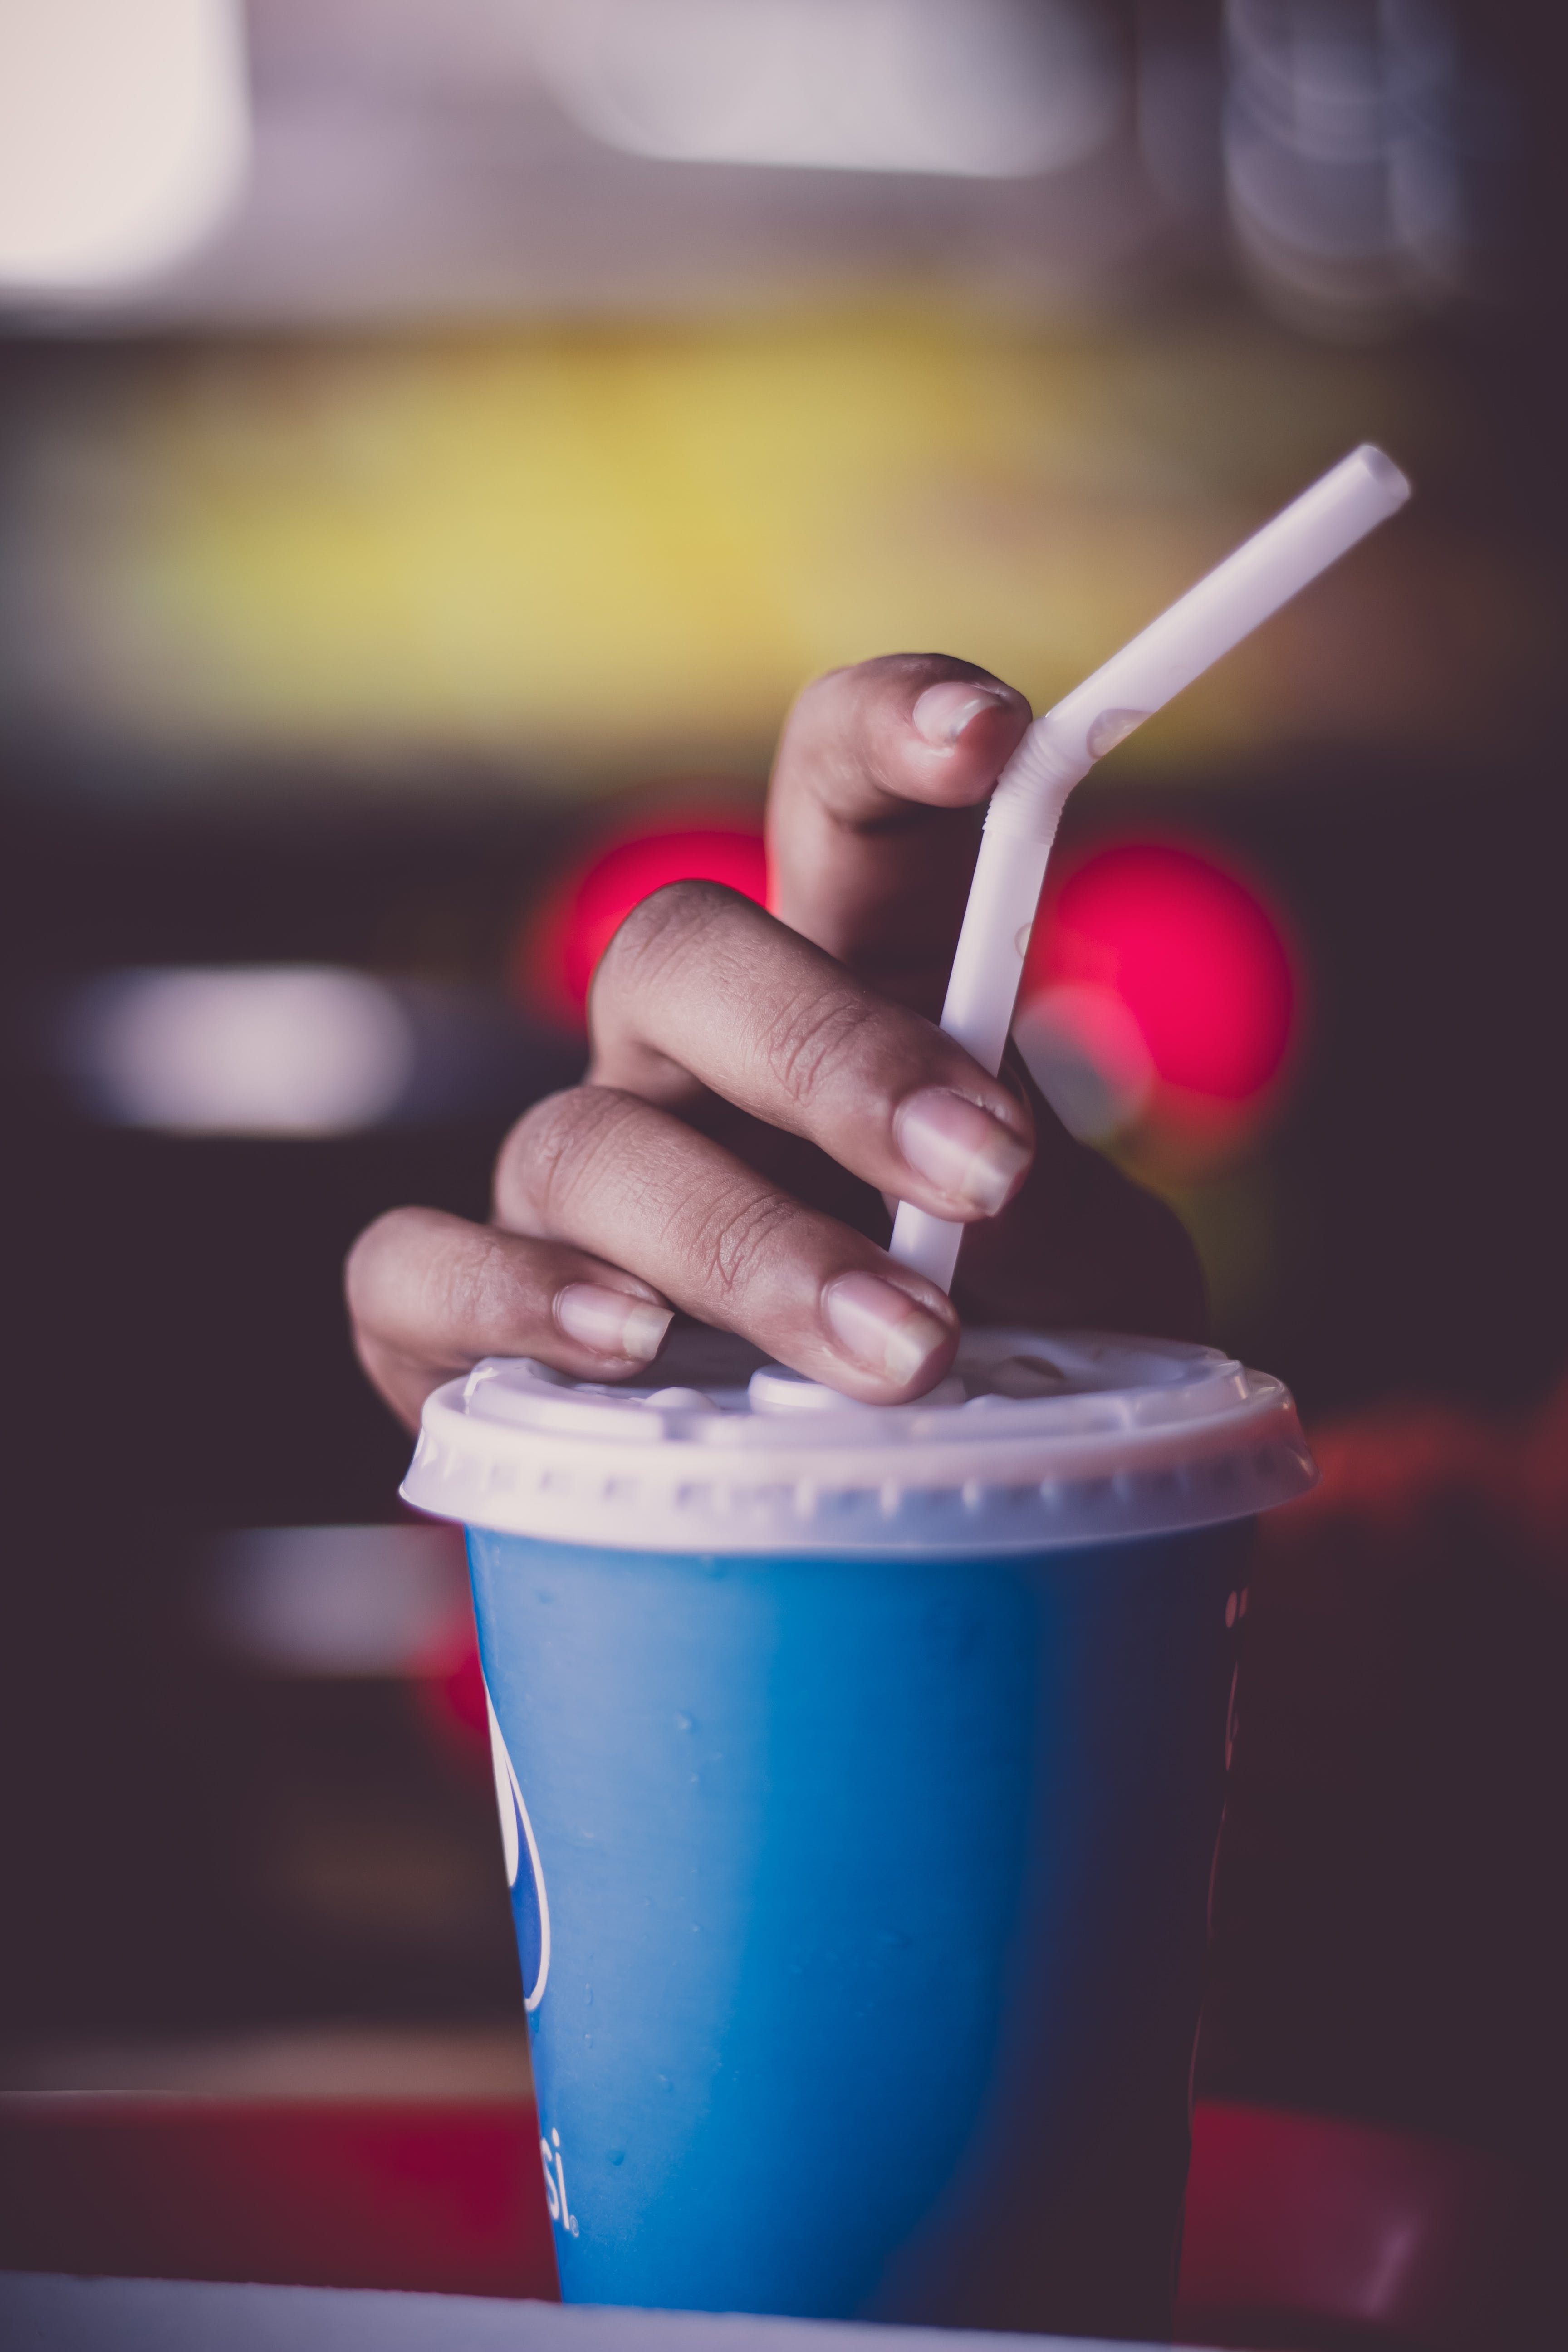 Person Holding Cup With Straw